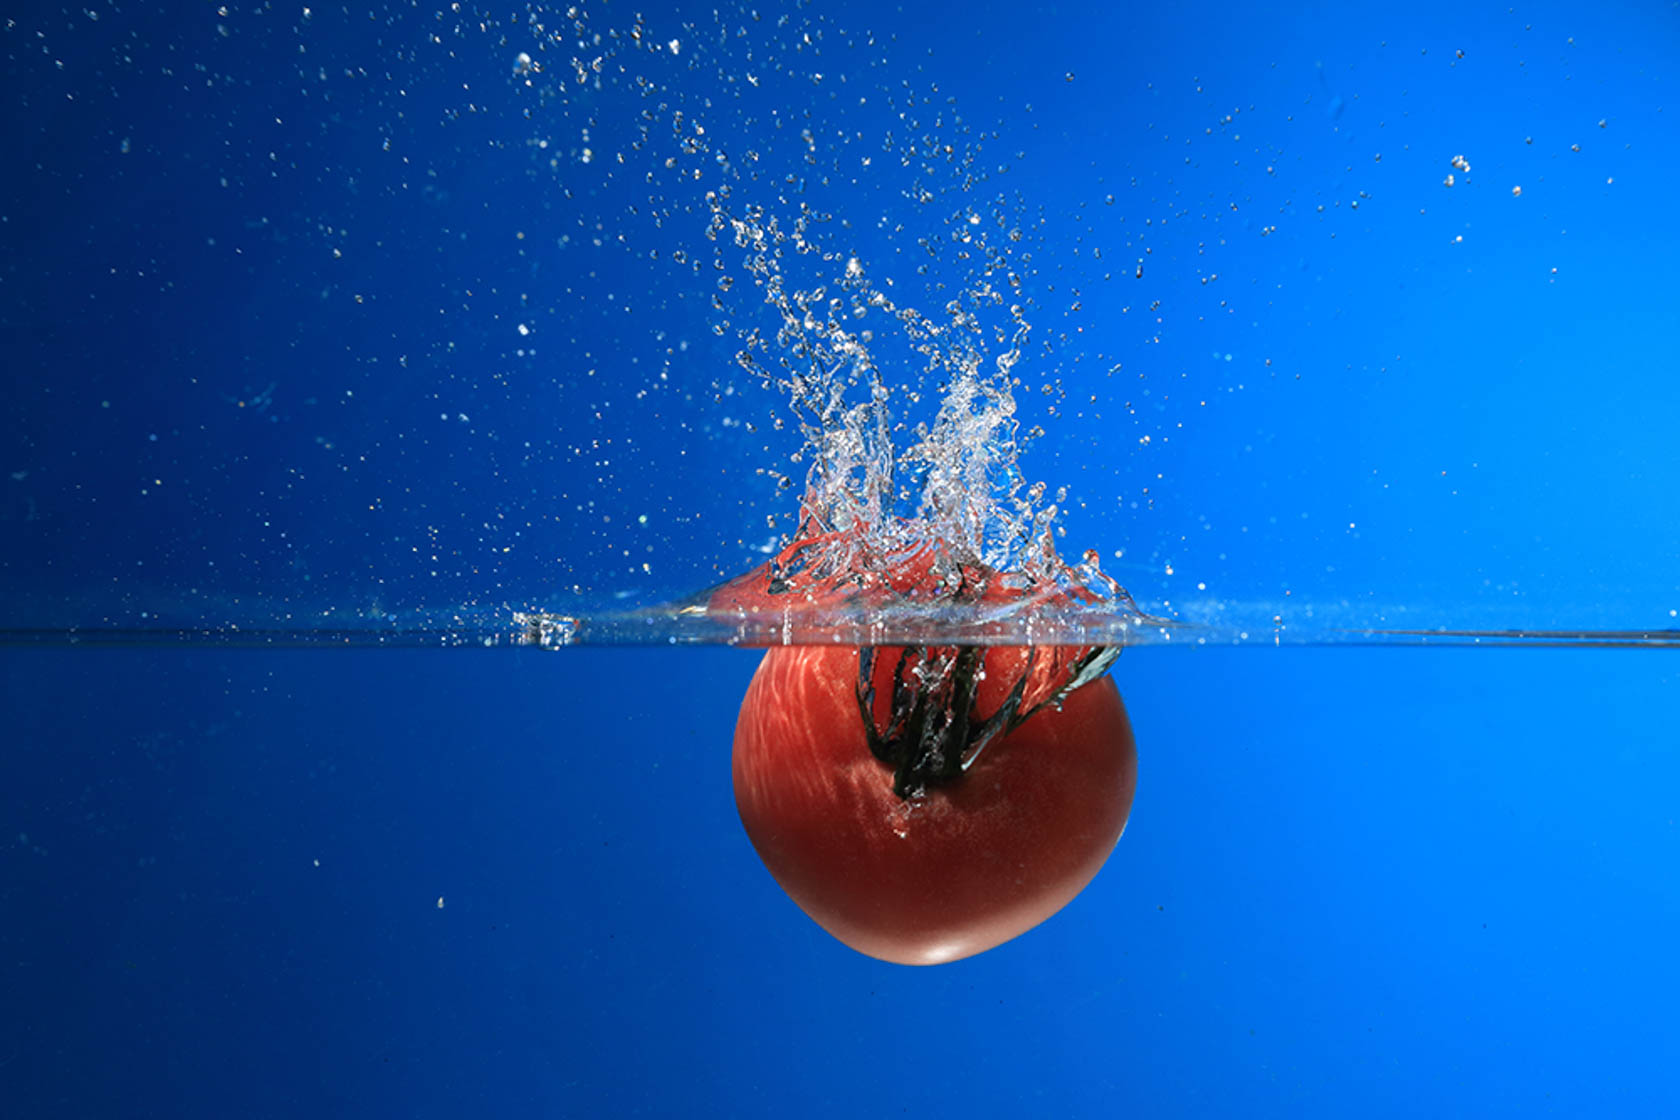 Tomato dropping into water taken using Canon Speedlite 430EX III-RT flash